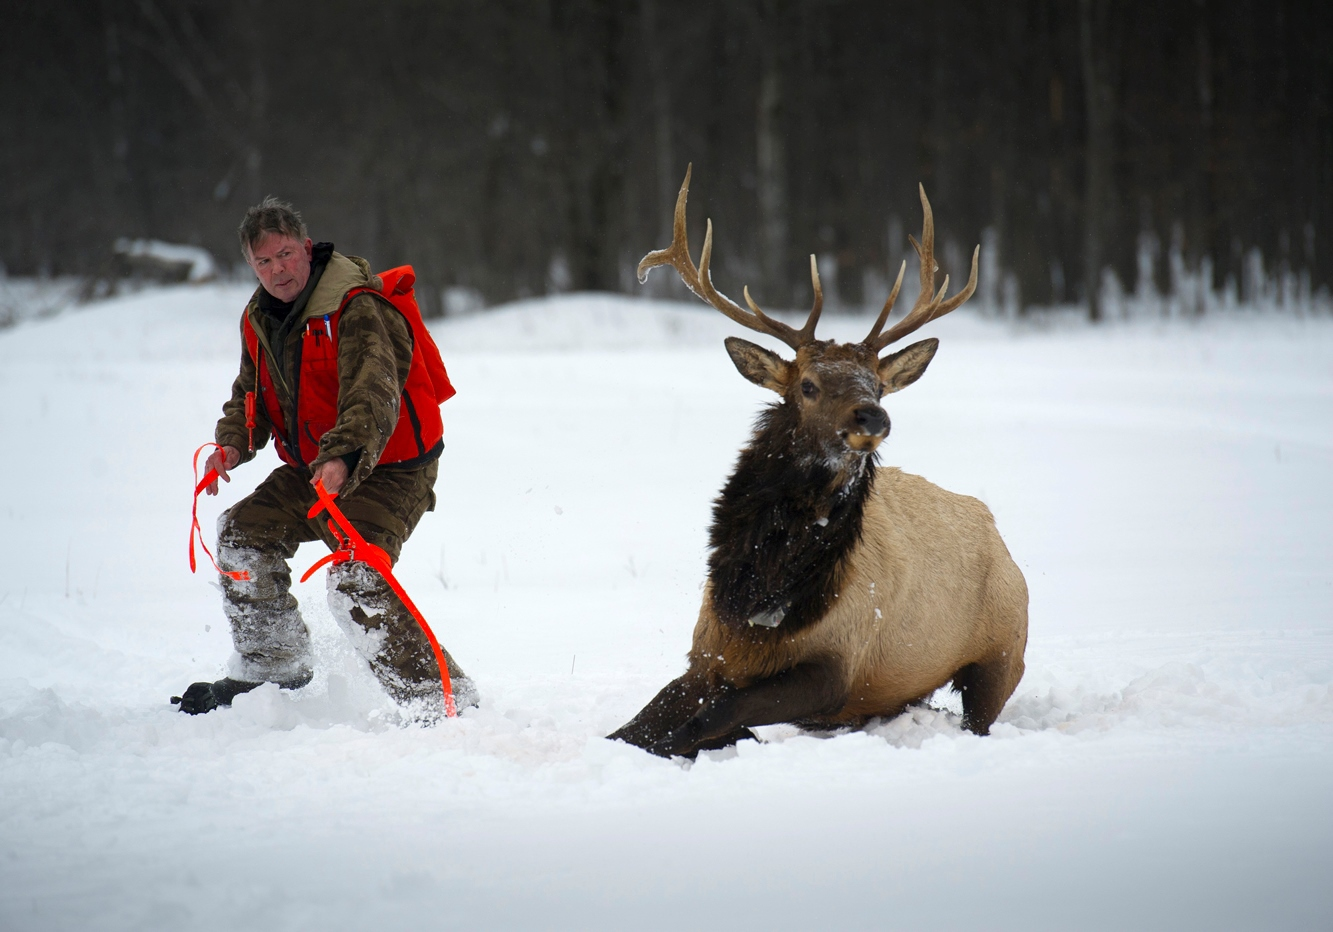 A bull elk runs away from a DNR researcher in a snowy setting in the northern Lower Peninsula.